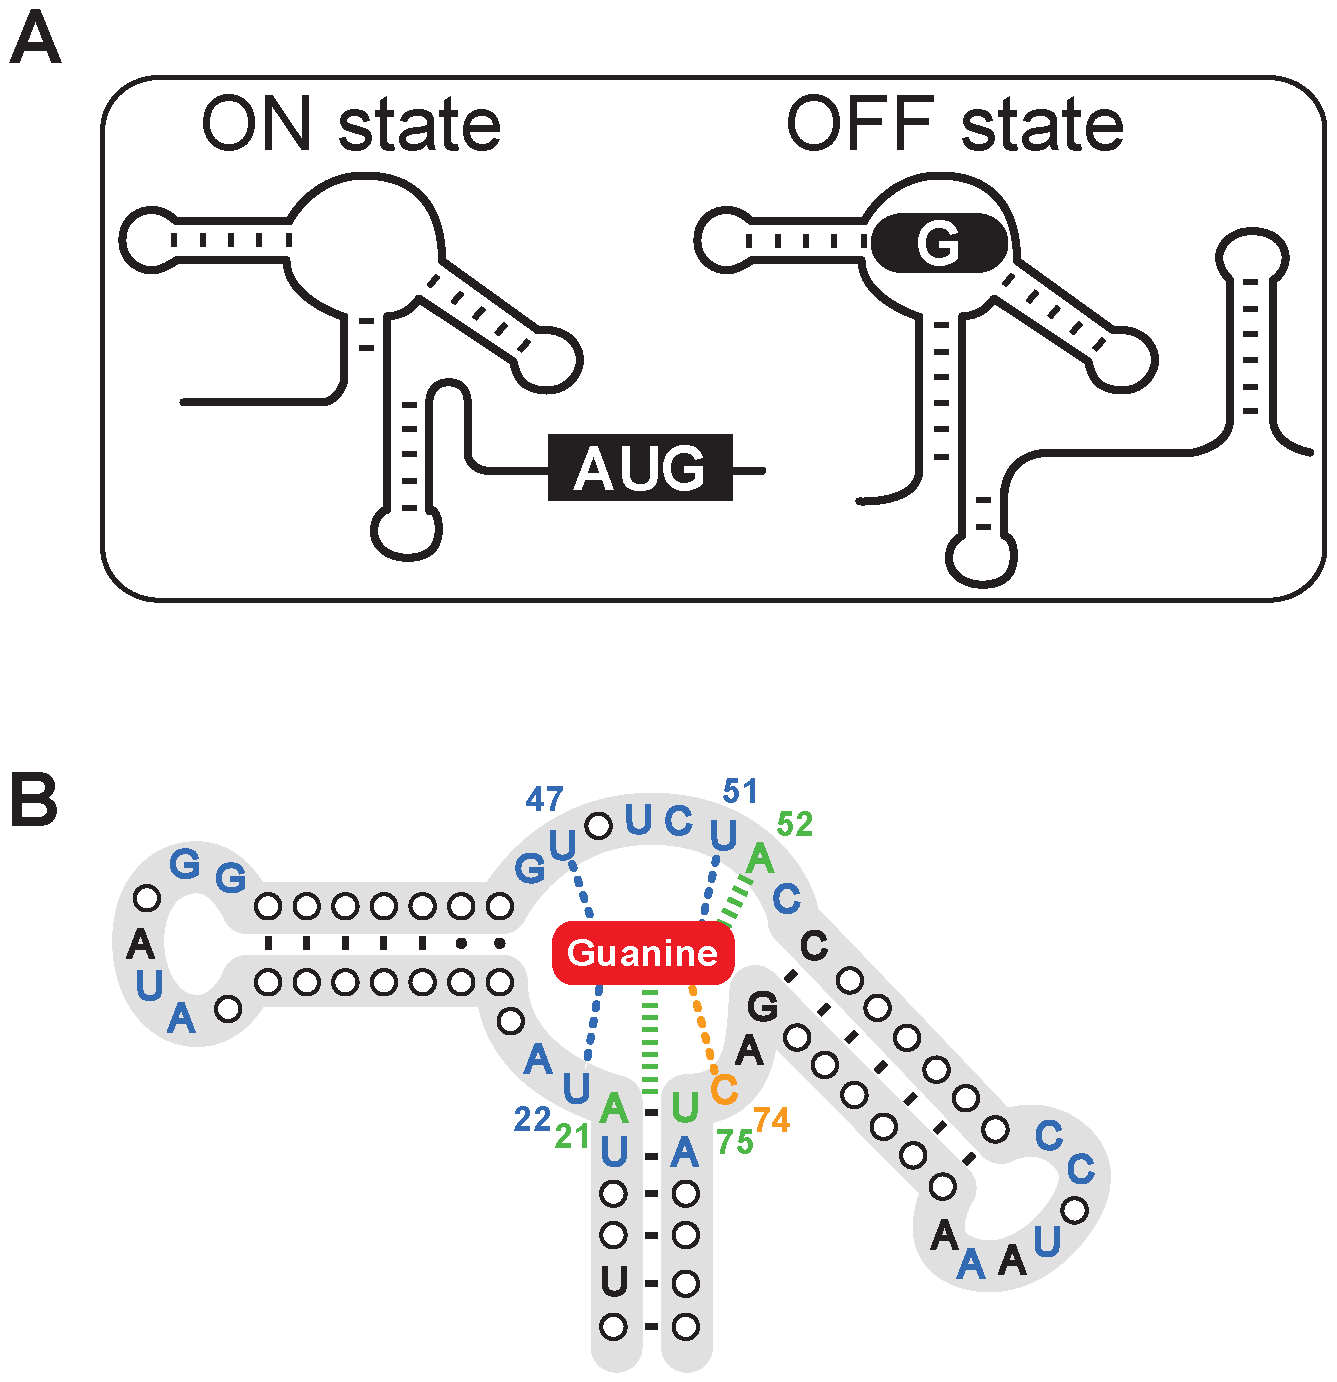 The structure of the guanine riboswitch.